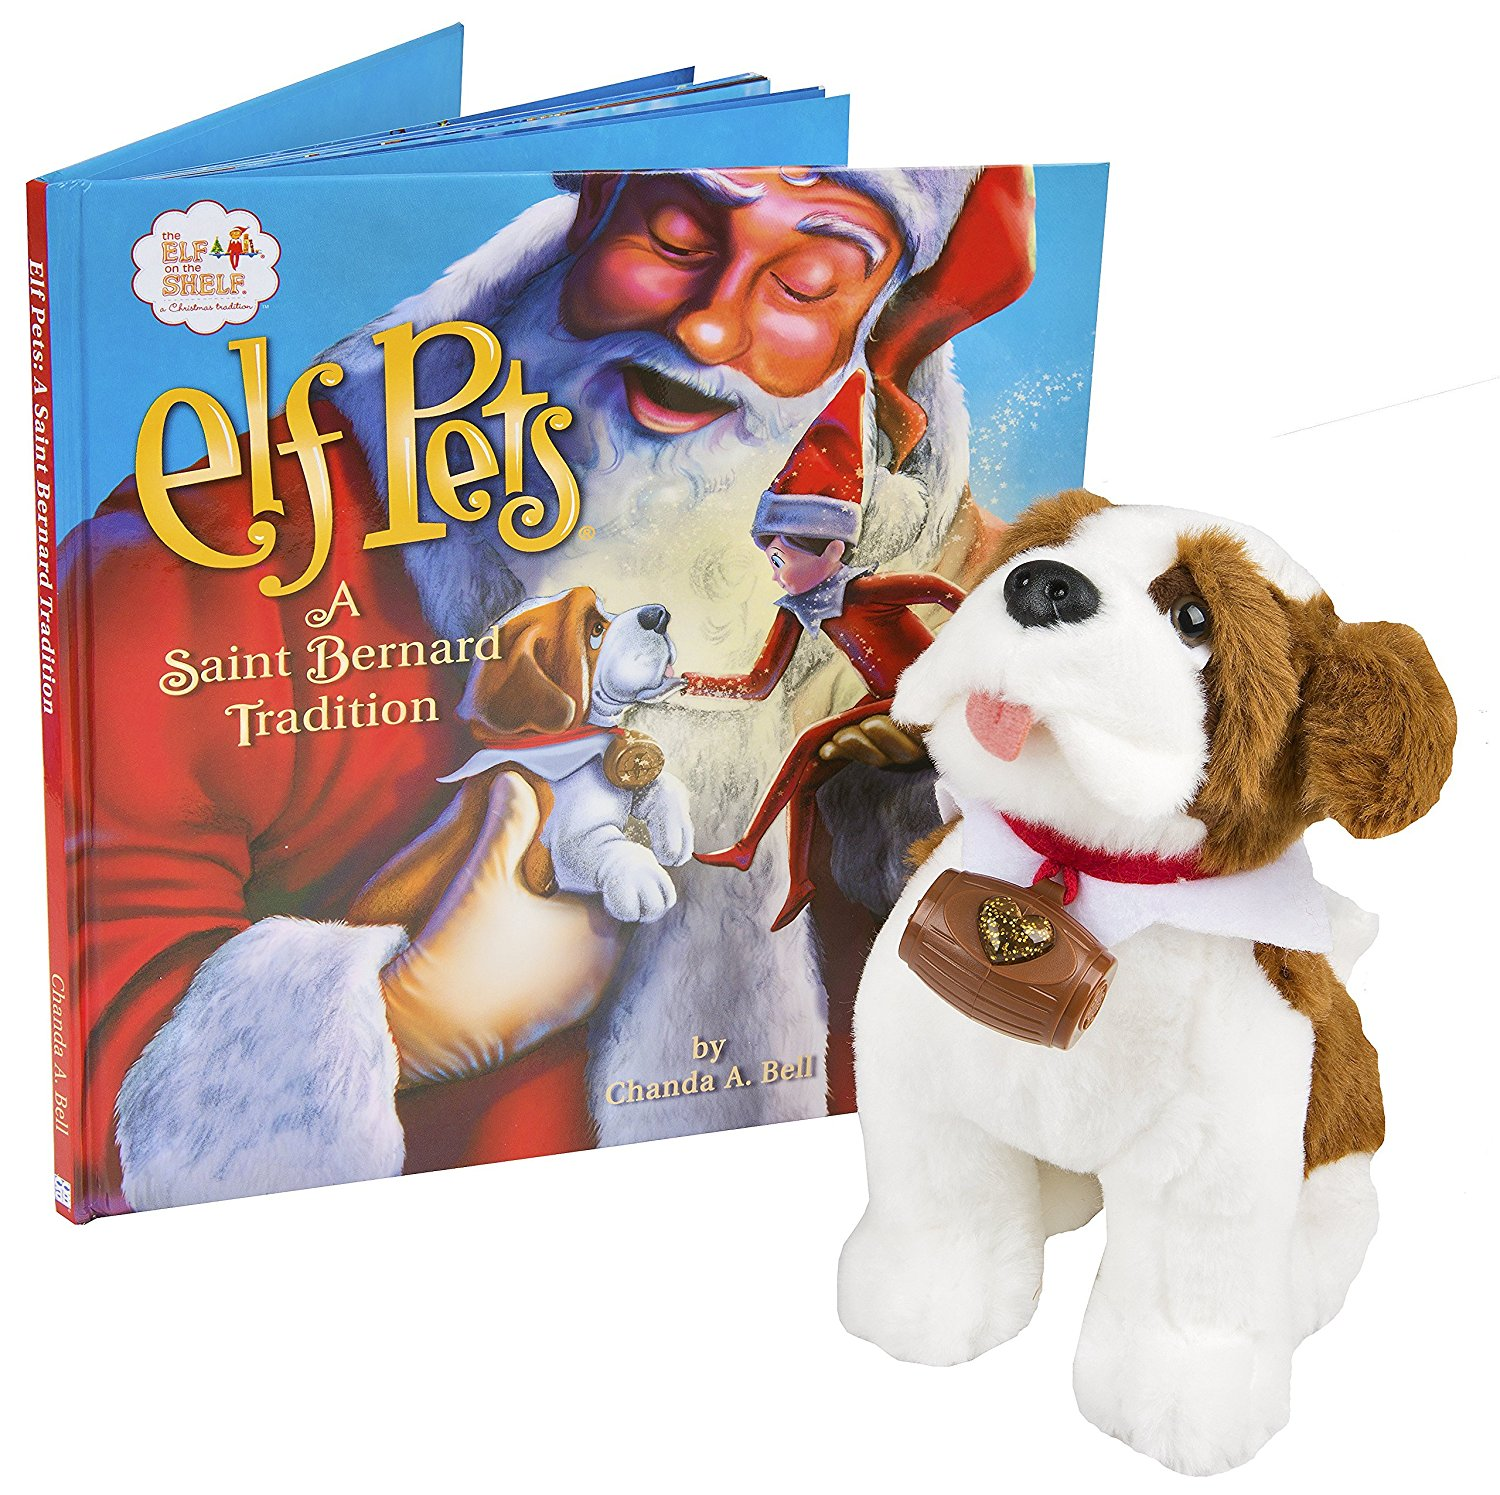 Check out these great ideas and accessories to help make life fun and easy for your family's Elf on the Shelf this Christmas season!